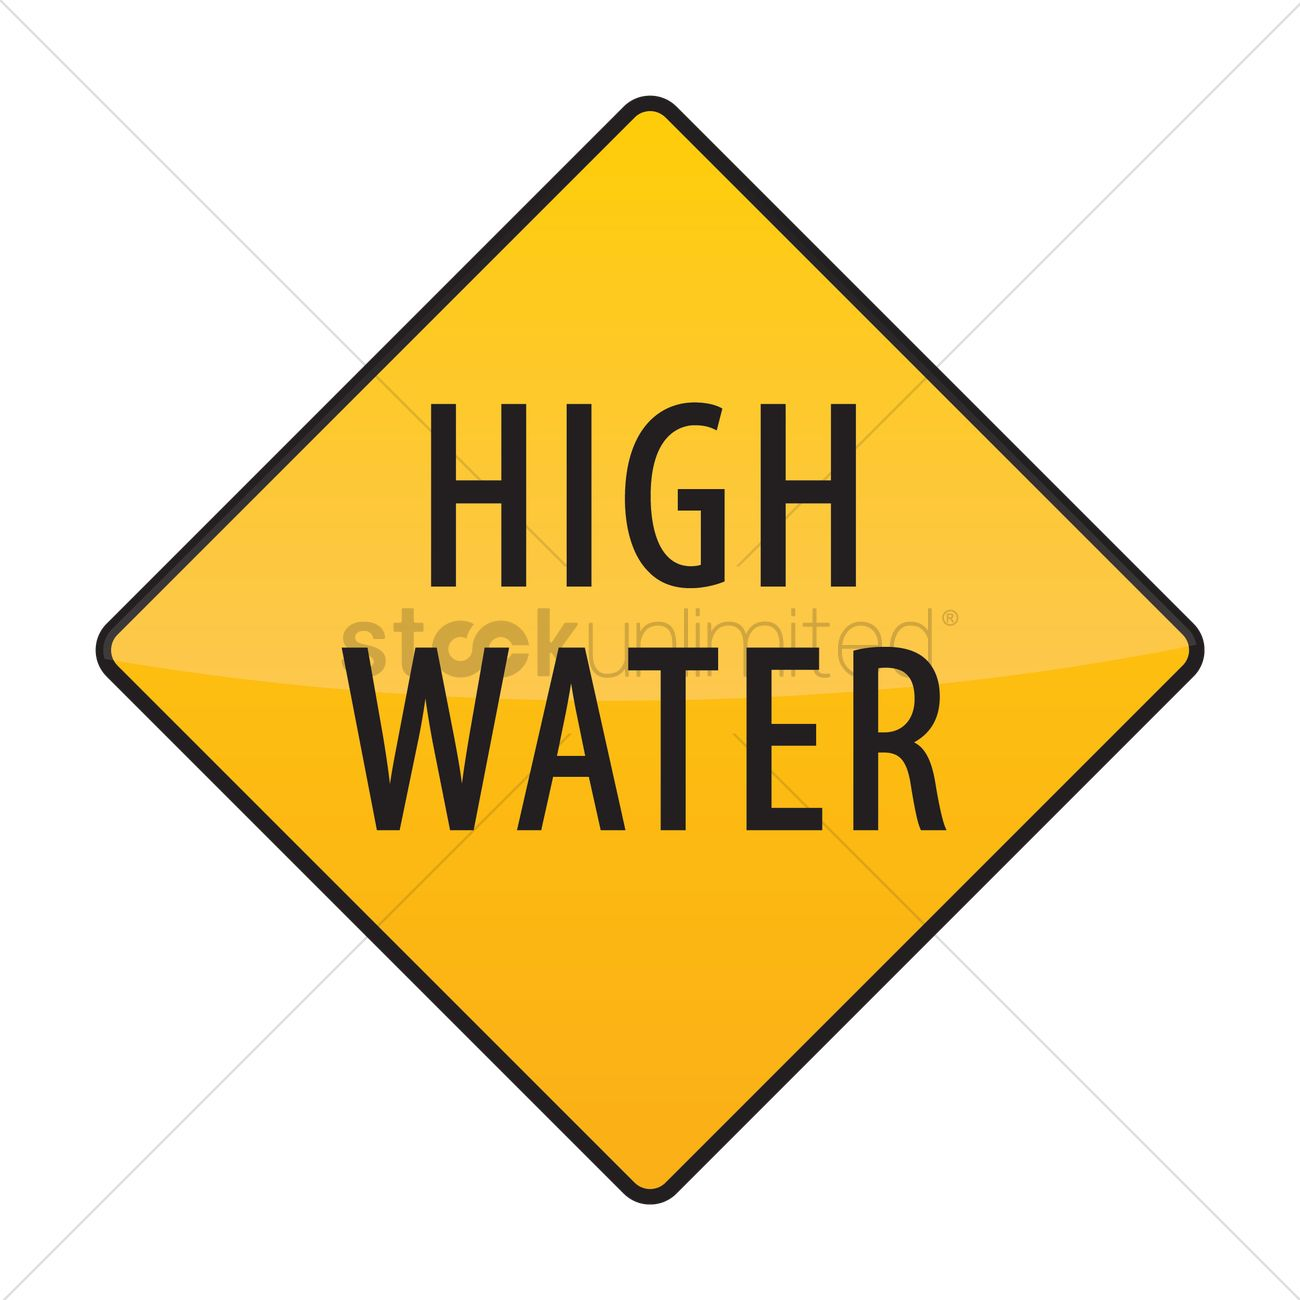 High water warning sign Vector Image.